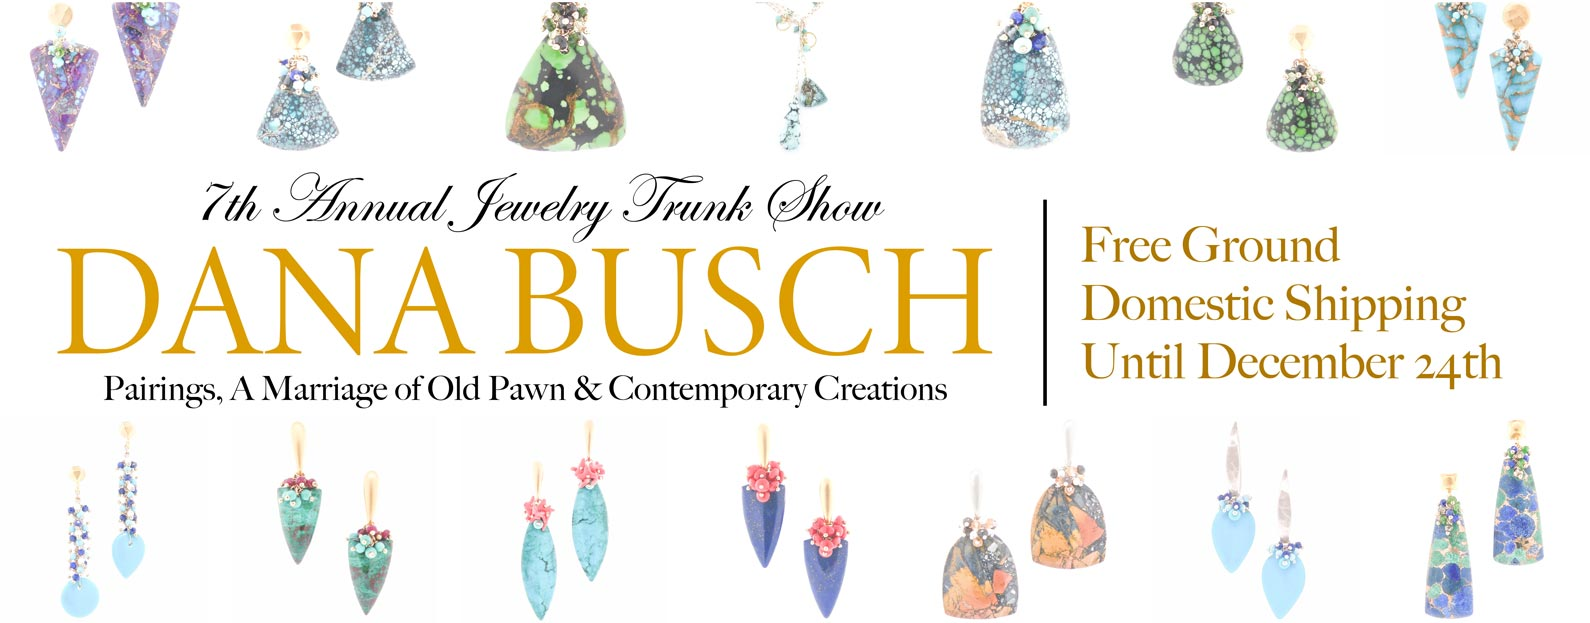 Dana Busch - 7th Annual Jewelry Trunk Show - Pairings, A Marriage of Old Pawn & Contemporary Creations